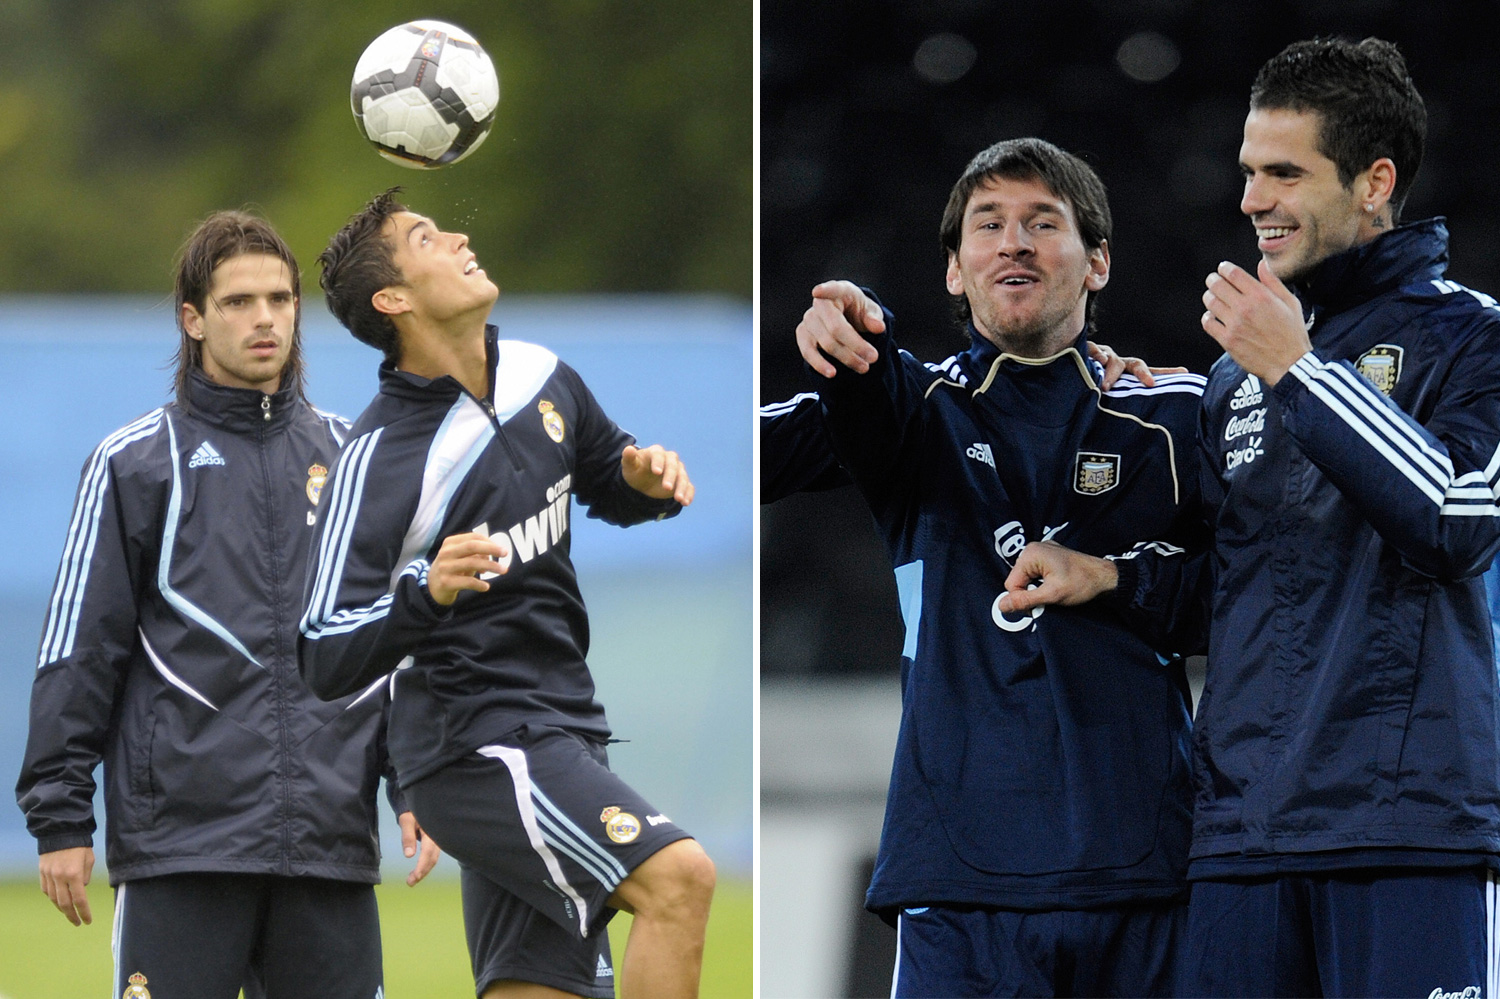 Fernando Gago opted for Messi over Ronaldo having played with both